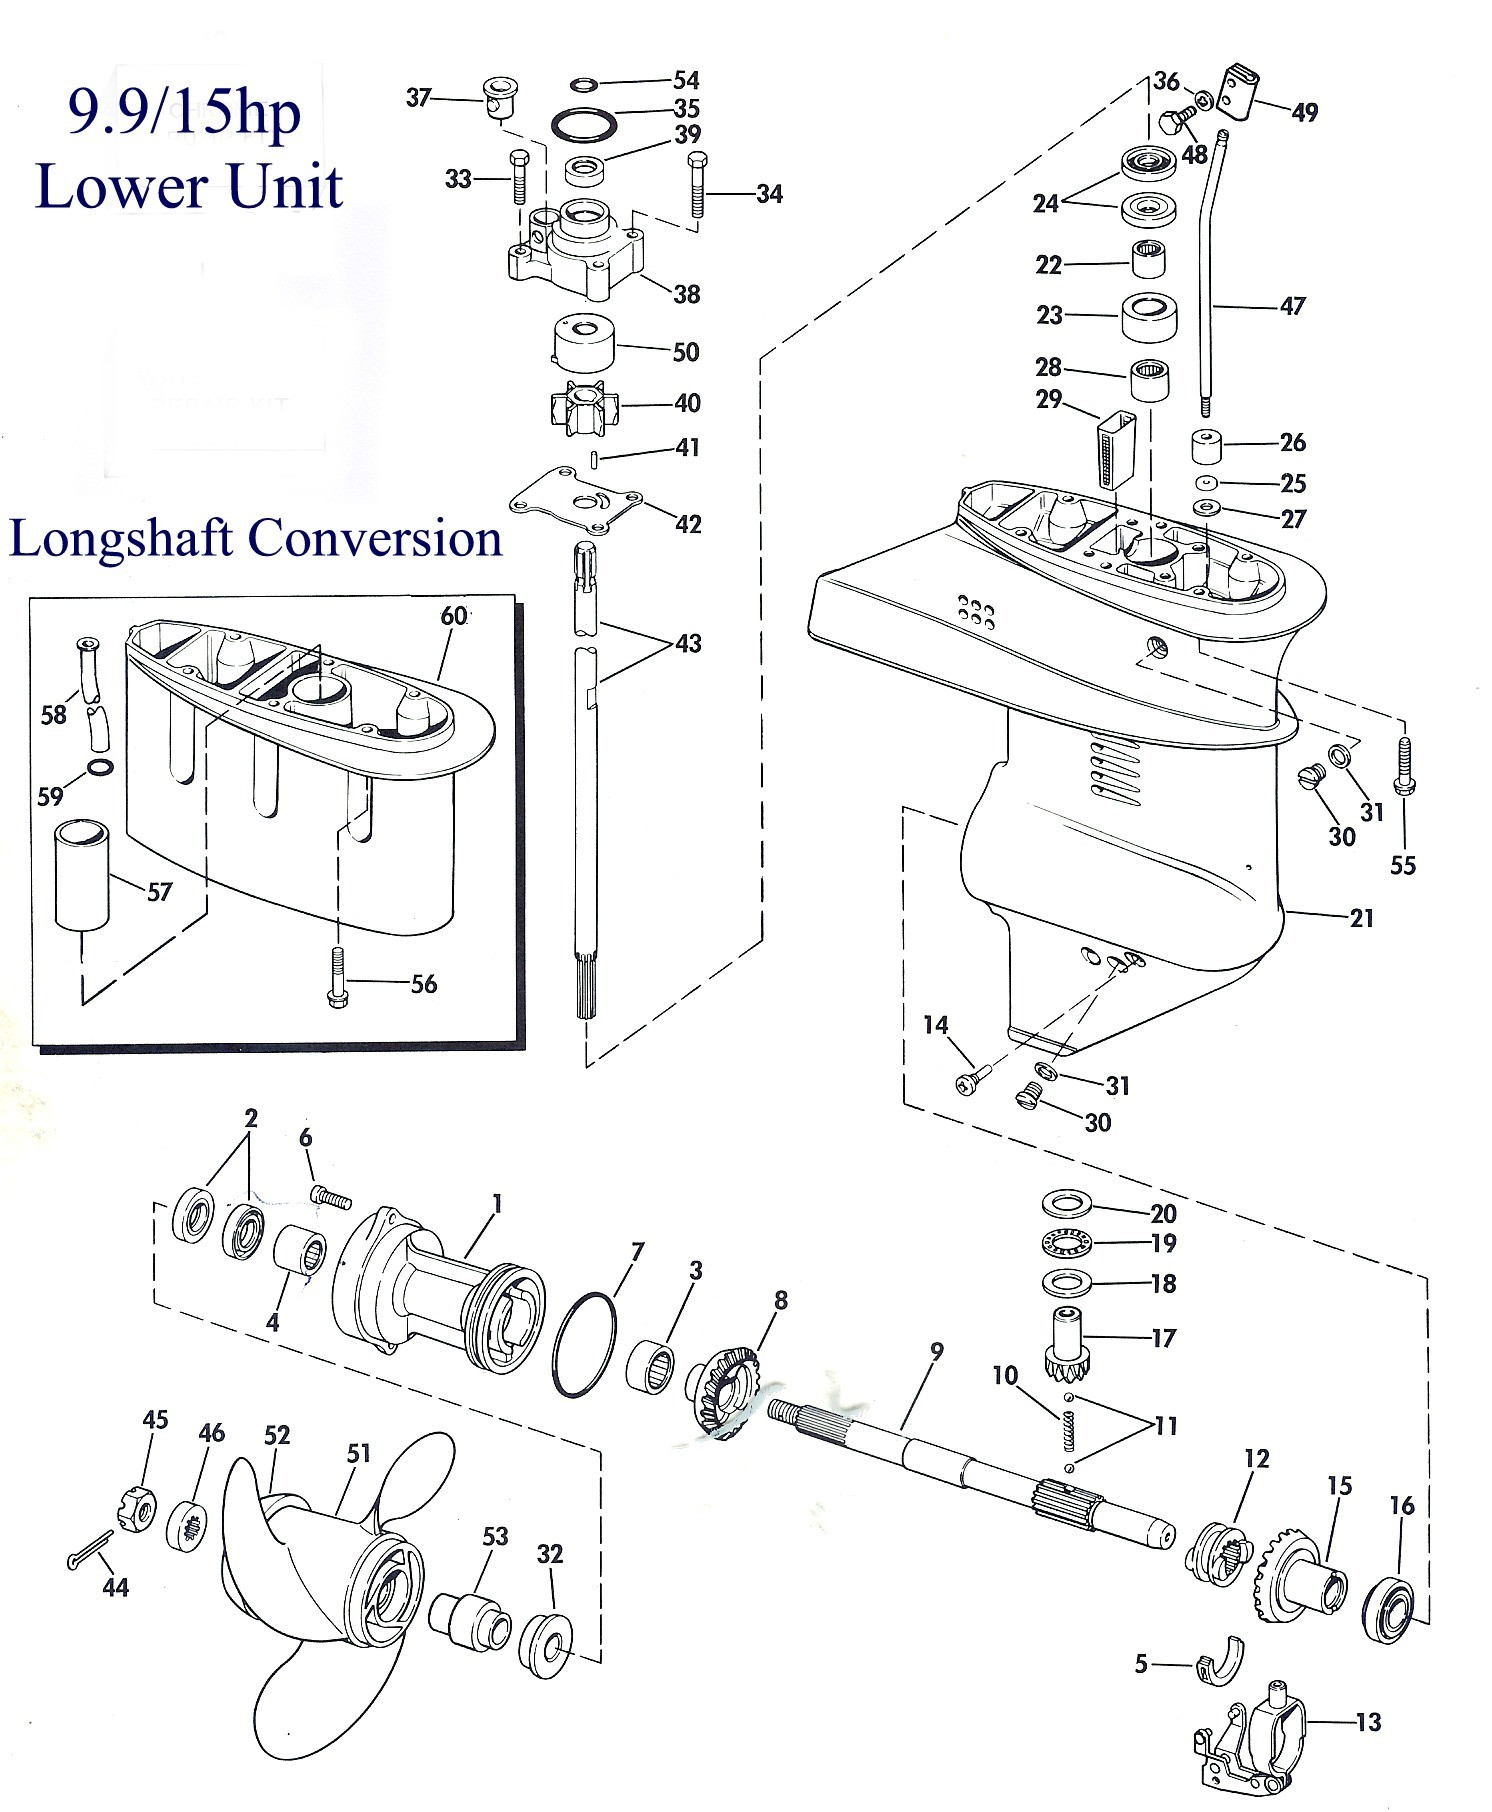 15 Hp Evinrude Parts Diagram Lower Unit Of 15 Hp Evinrude Parts Diagram